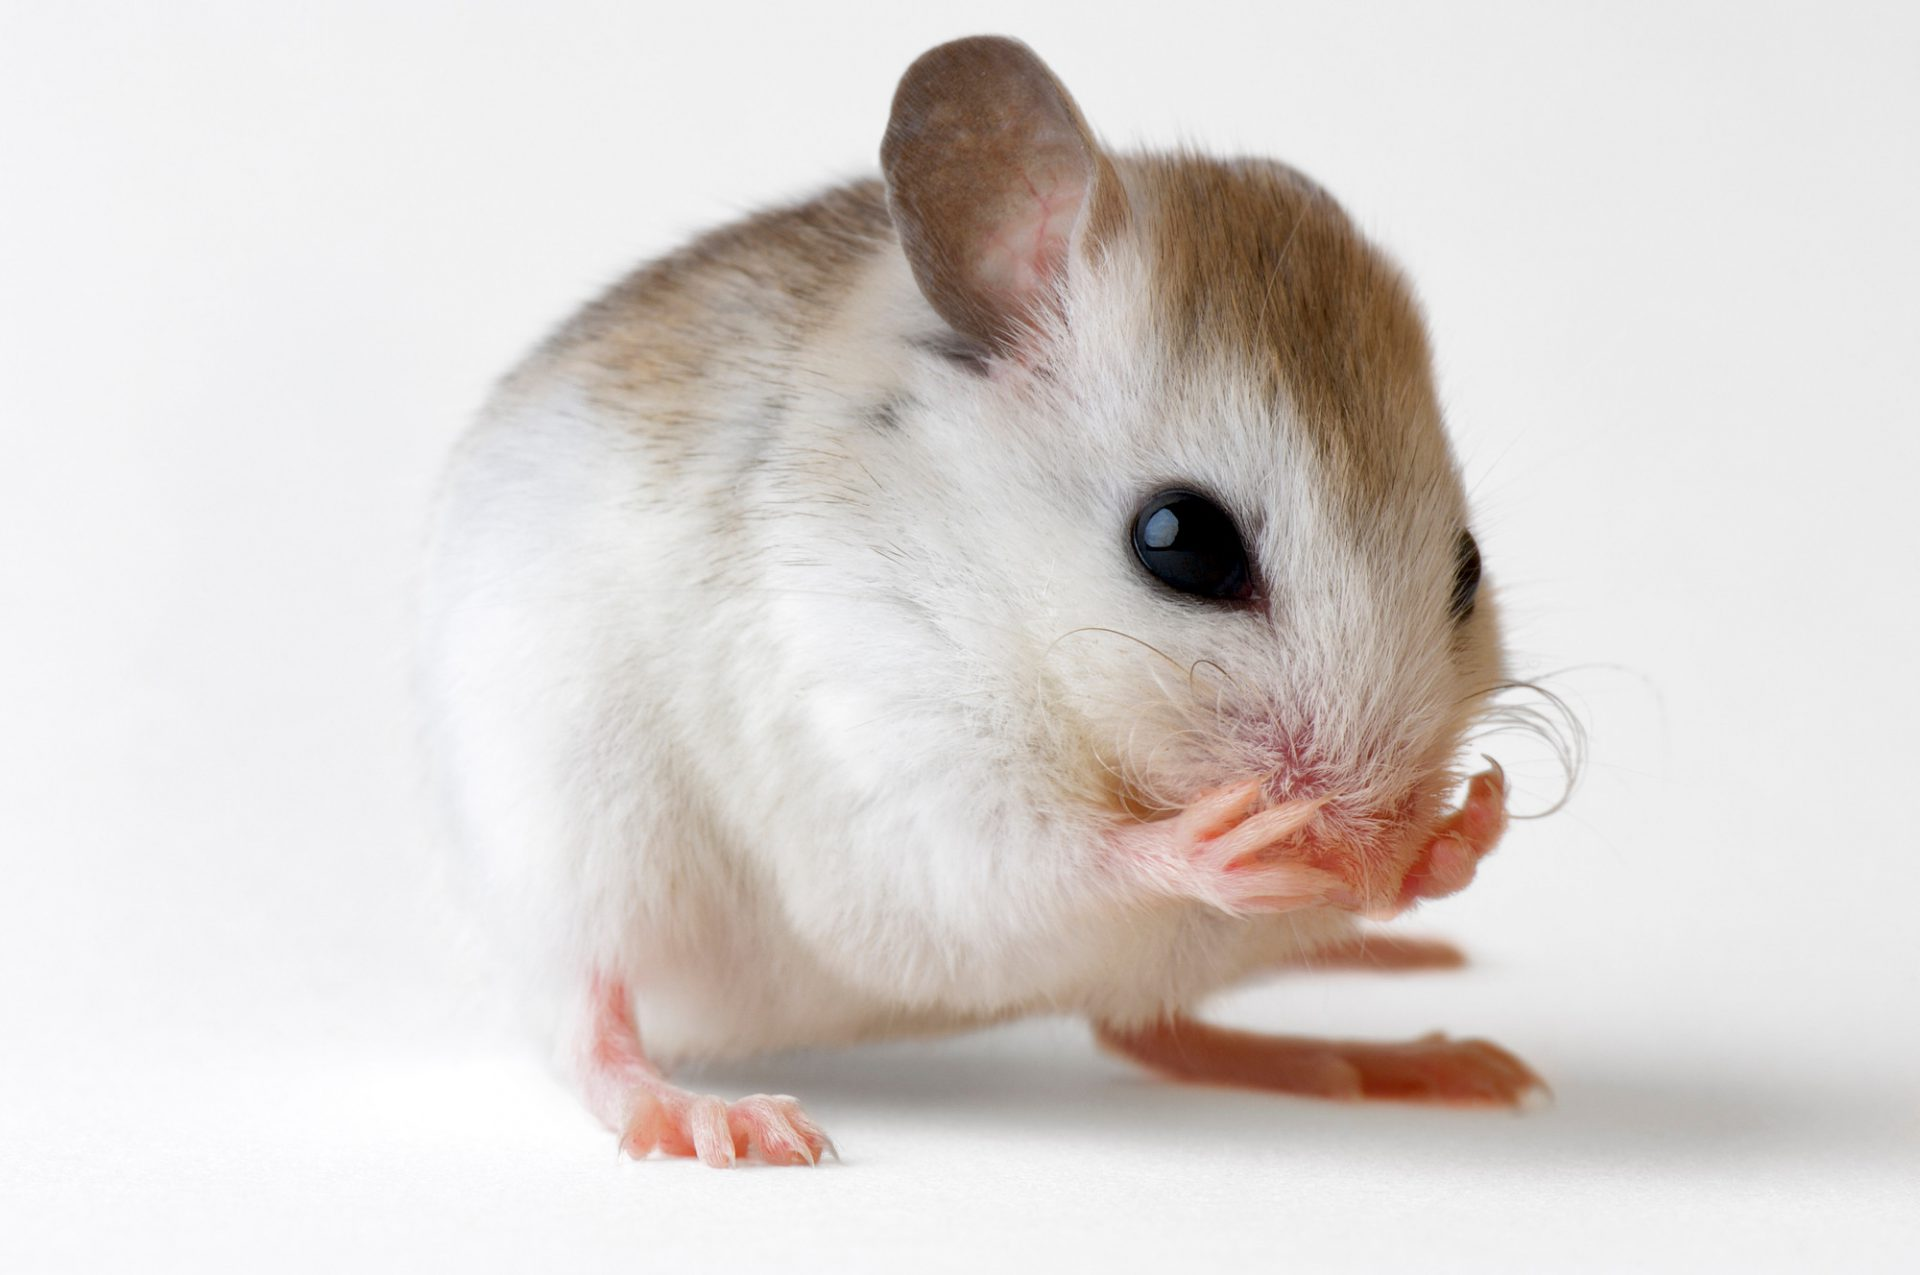 A St. Andrew beach mouse (Peromyscus polionotus peninsularis), a federally endangered rodent, in Panama City, FL. This and several other beach mice subspecies are imperiled due to beach development. (US: Endangered)